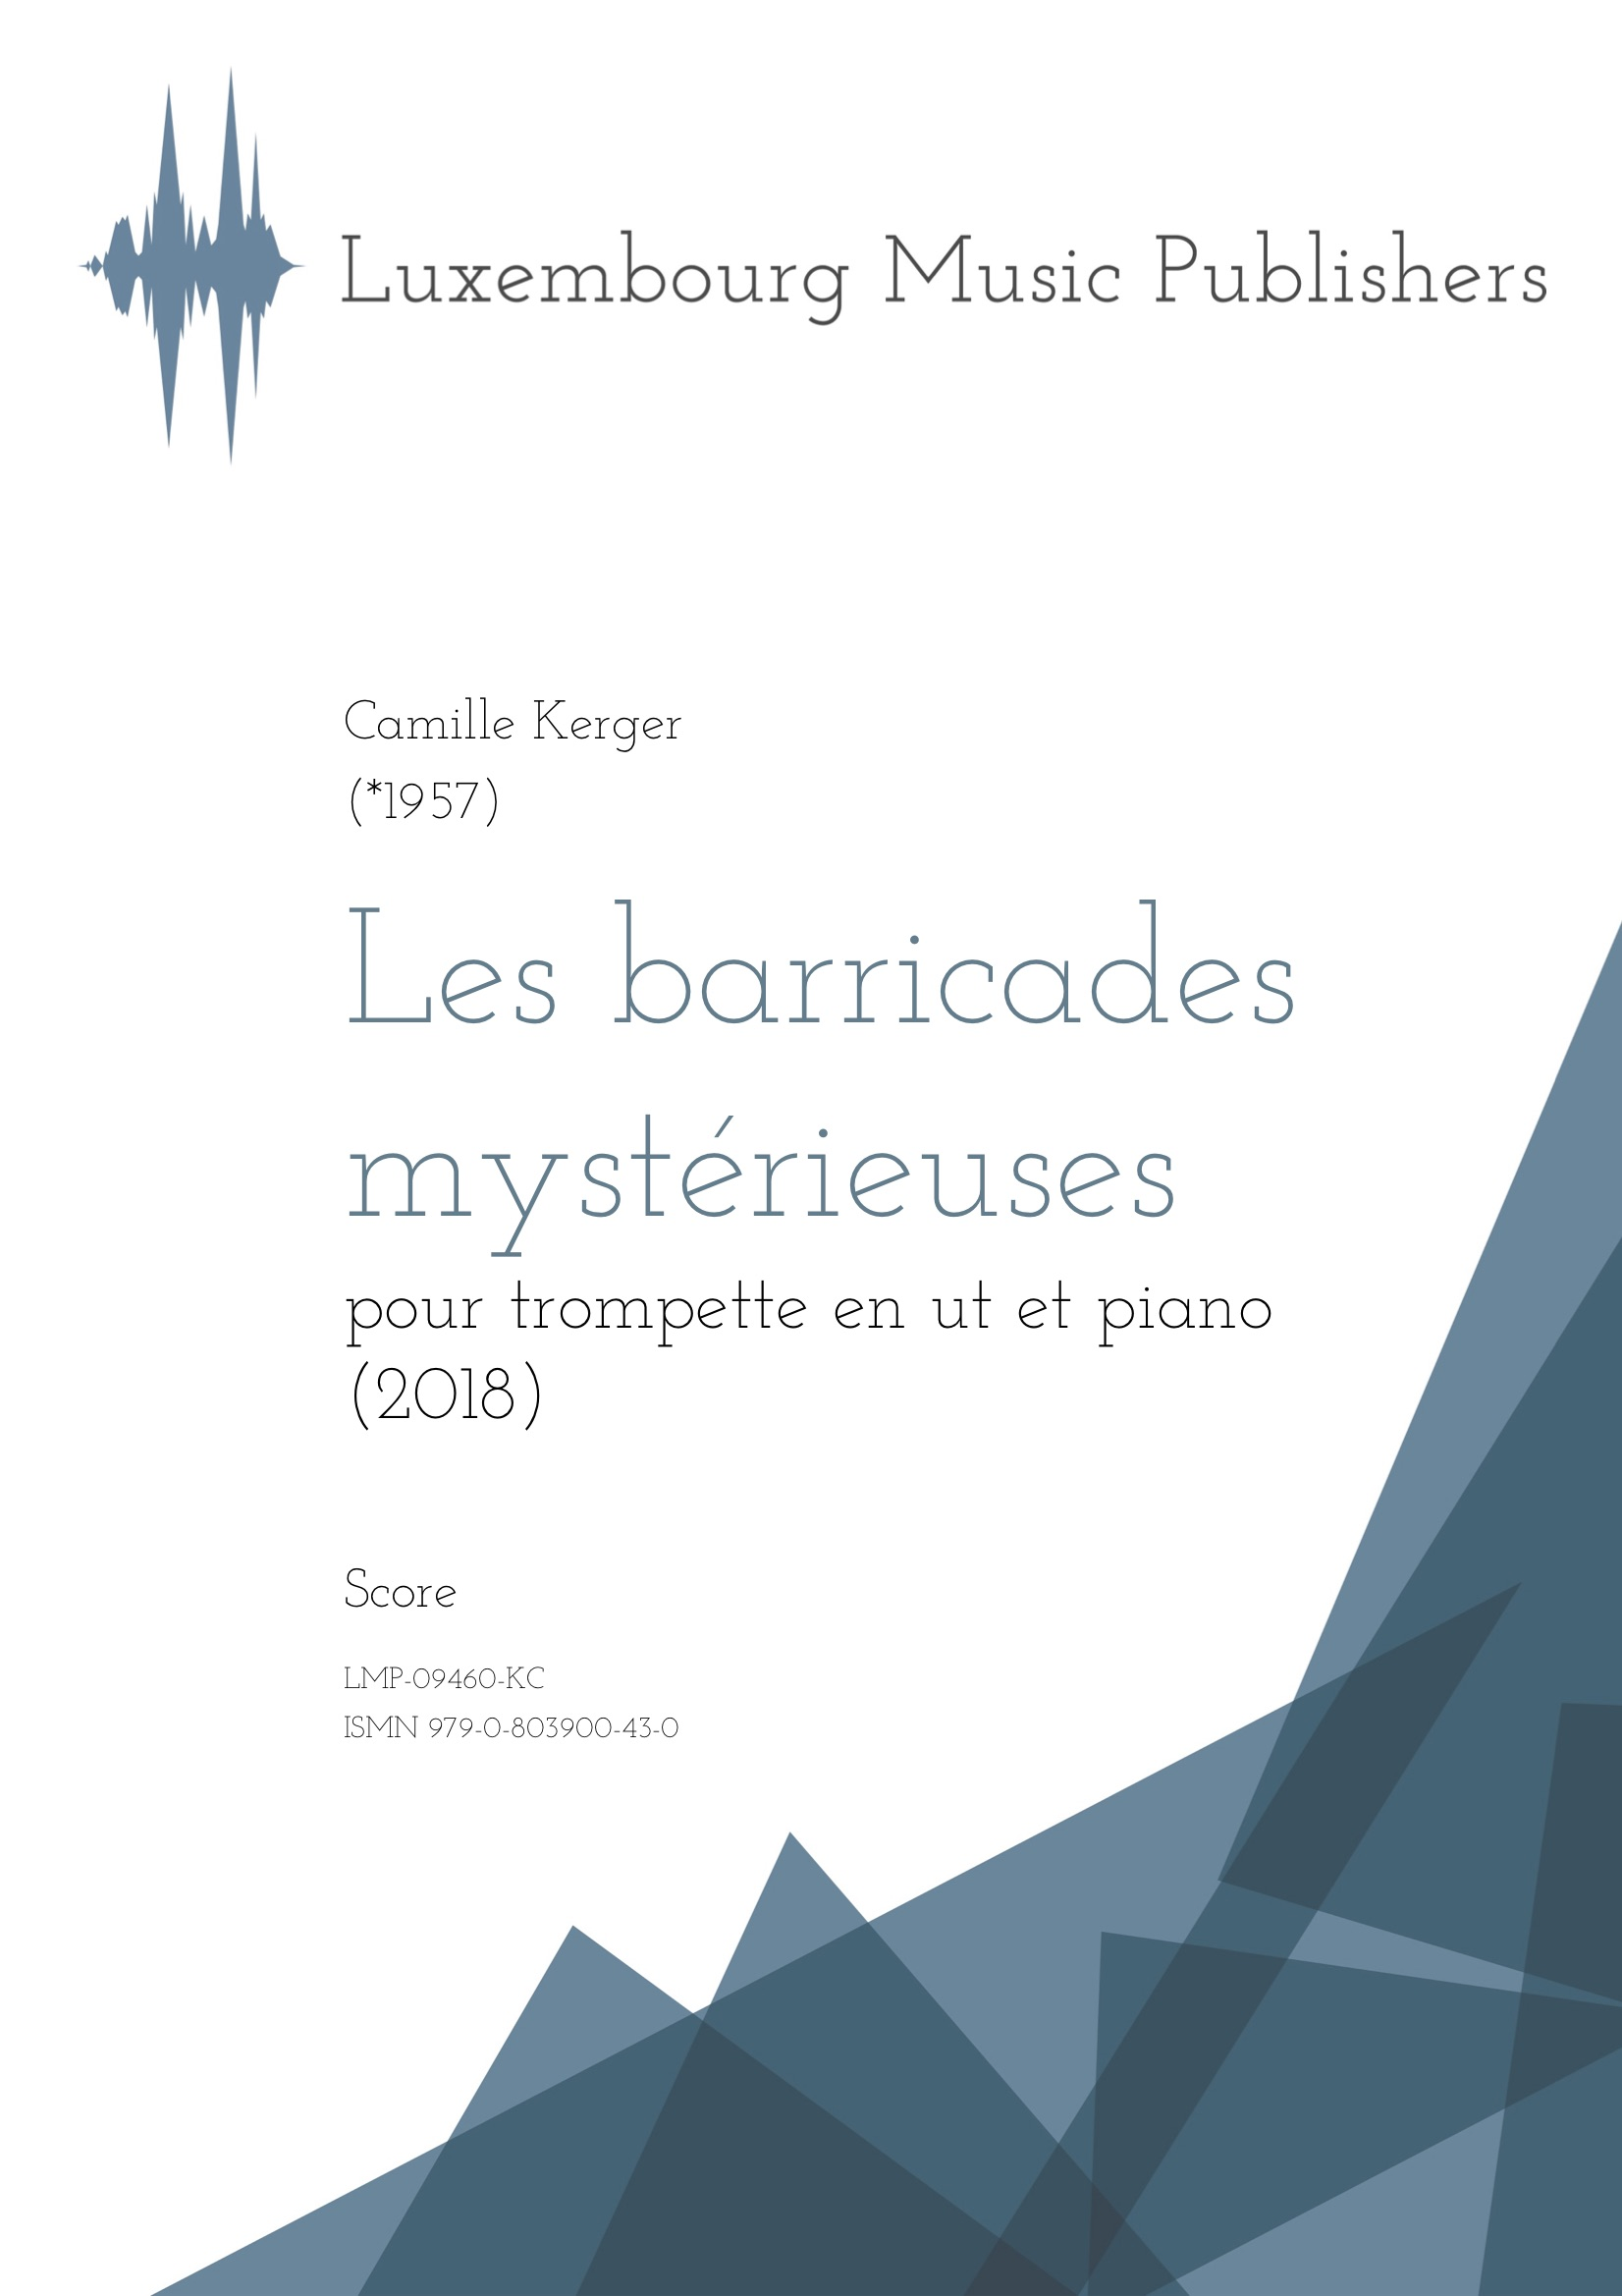 Les barricades mystérieuses. Sheet Music by Camille Kerger, composer. Music for Trumpet in C and Piano. Contemporary Chamber Music for trumpet and piano. Music for brass and piano.